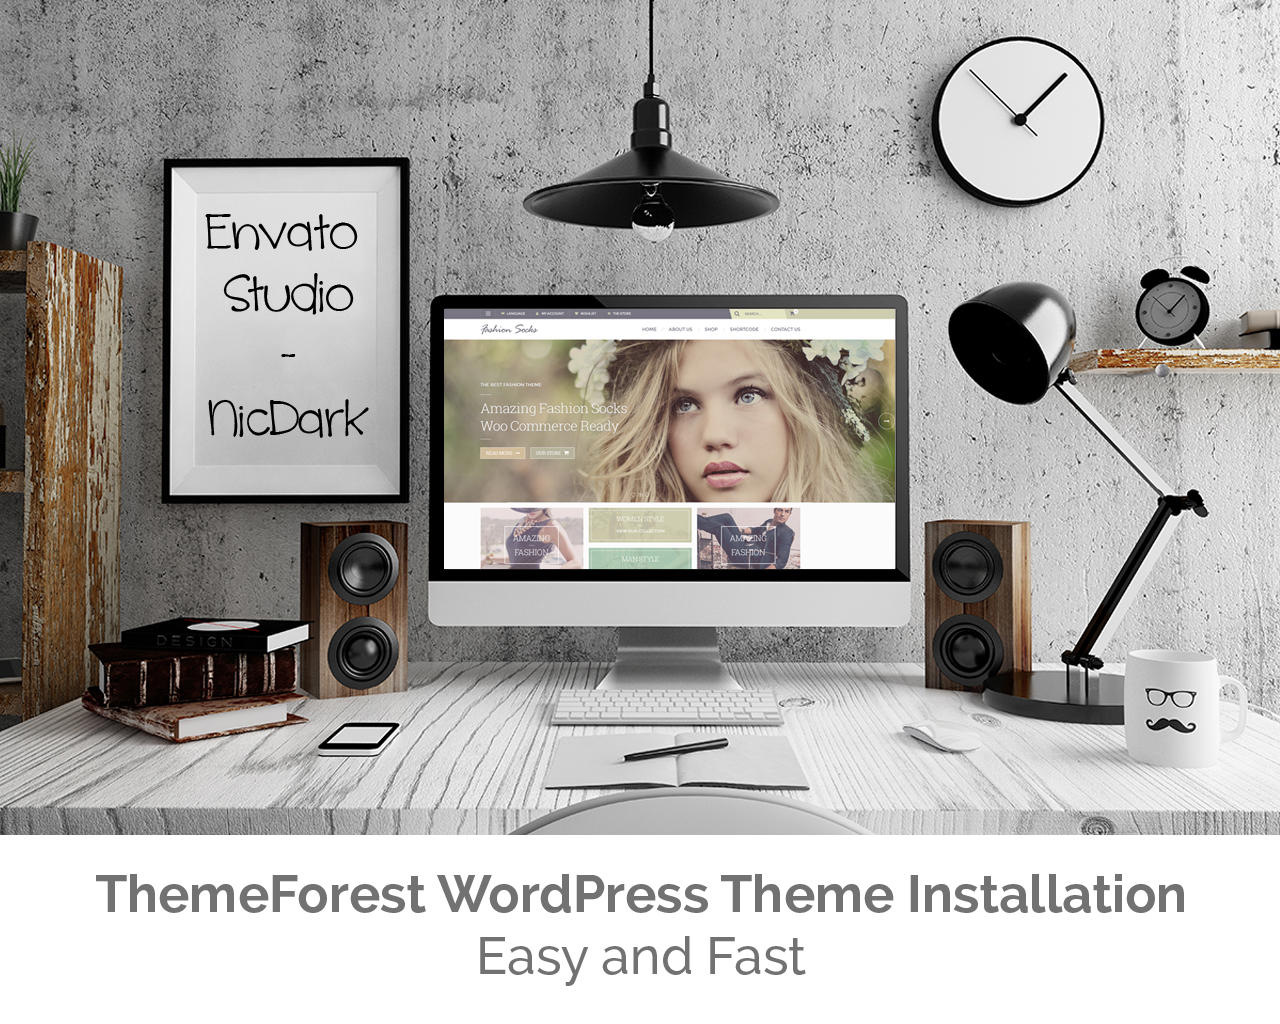 ThemeForest WordPress Theme Installation by nicdark - 63097